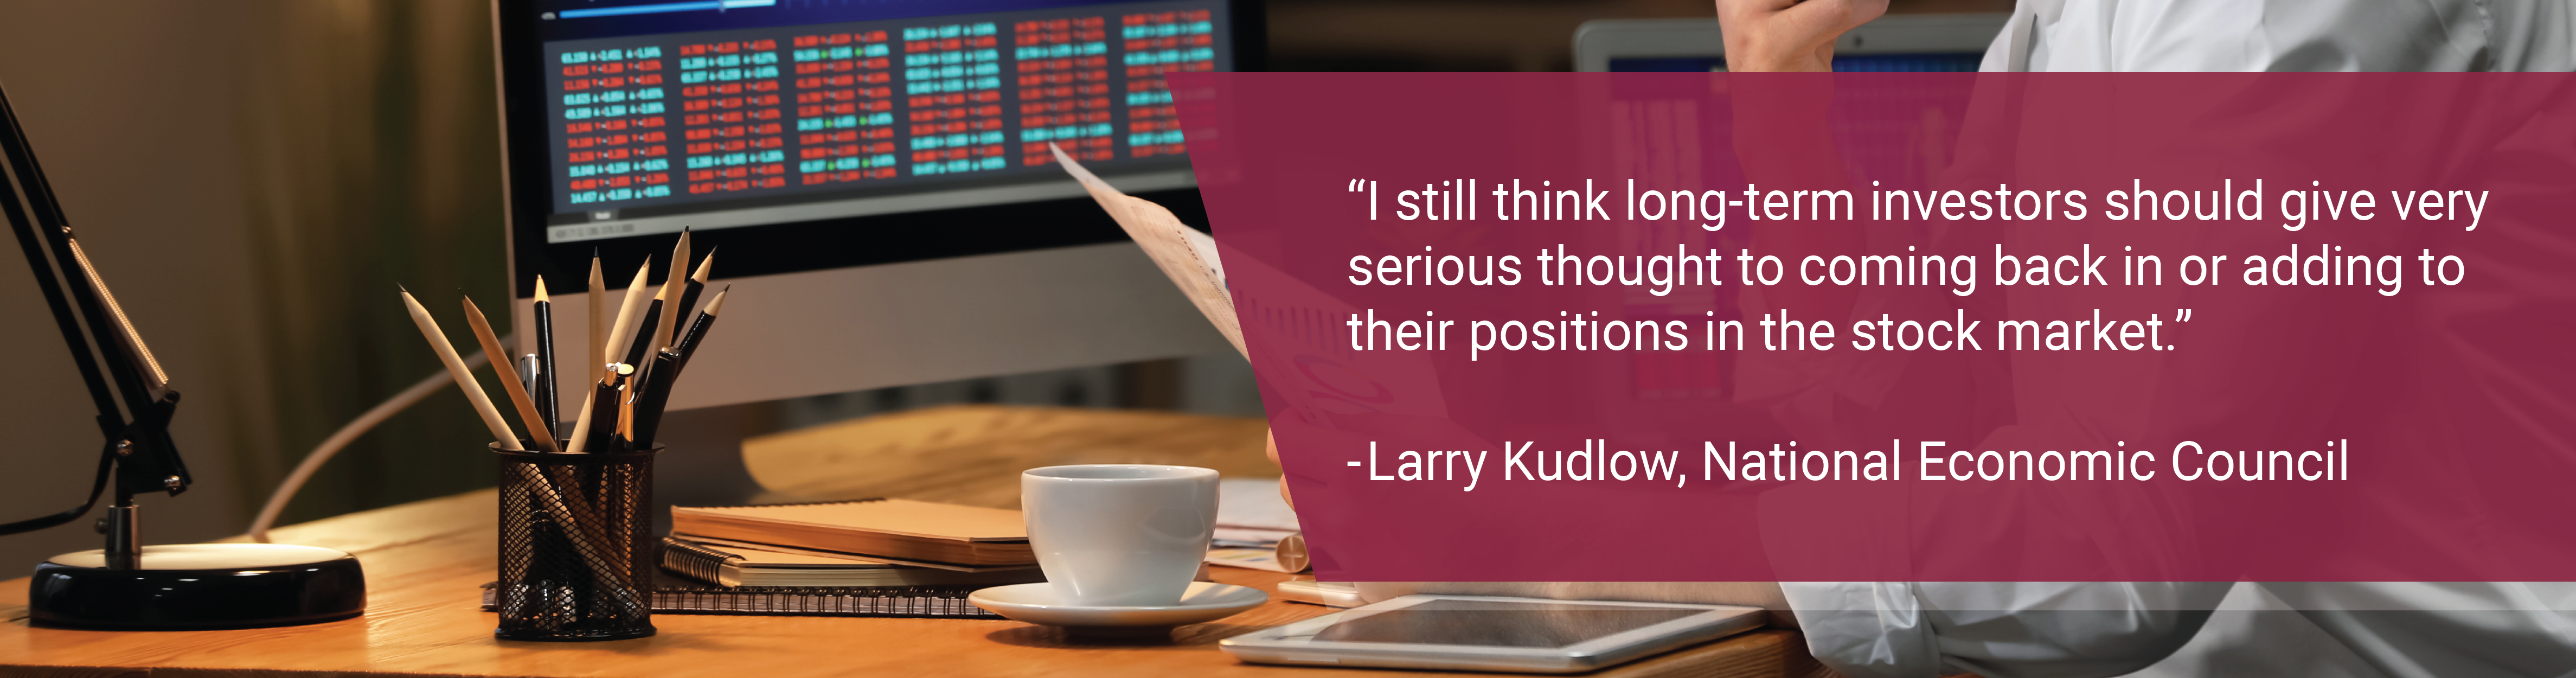 "Picture of a desk. Text: ""I still think long-term investors should give very serious thought to coming back in or adding to their positions in the stock market."" - Larry Kudlow, National Economic Council"